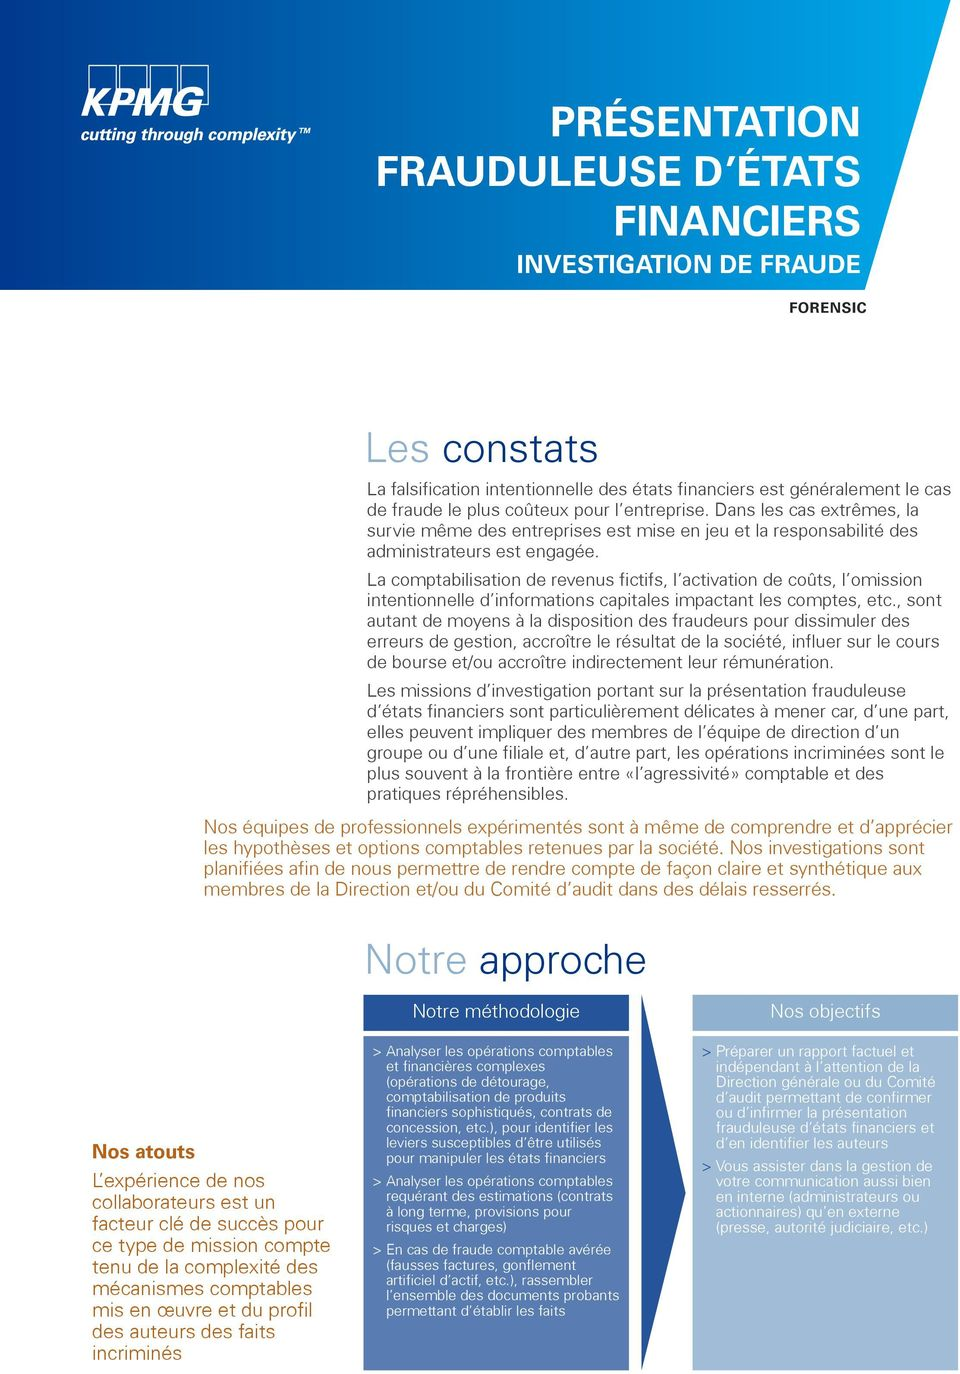 La comptabilisation de revenus fictifs, l activation de coûts, l omission intentionnelle d informations capitales impactant les comptes, etc.